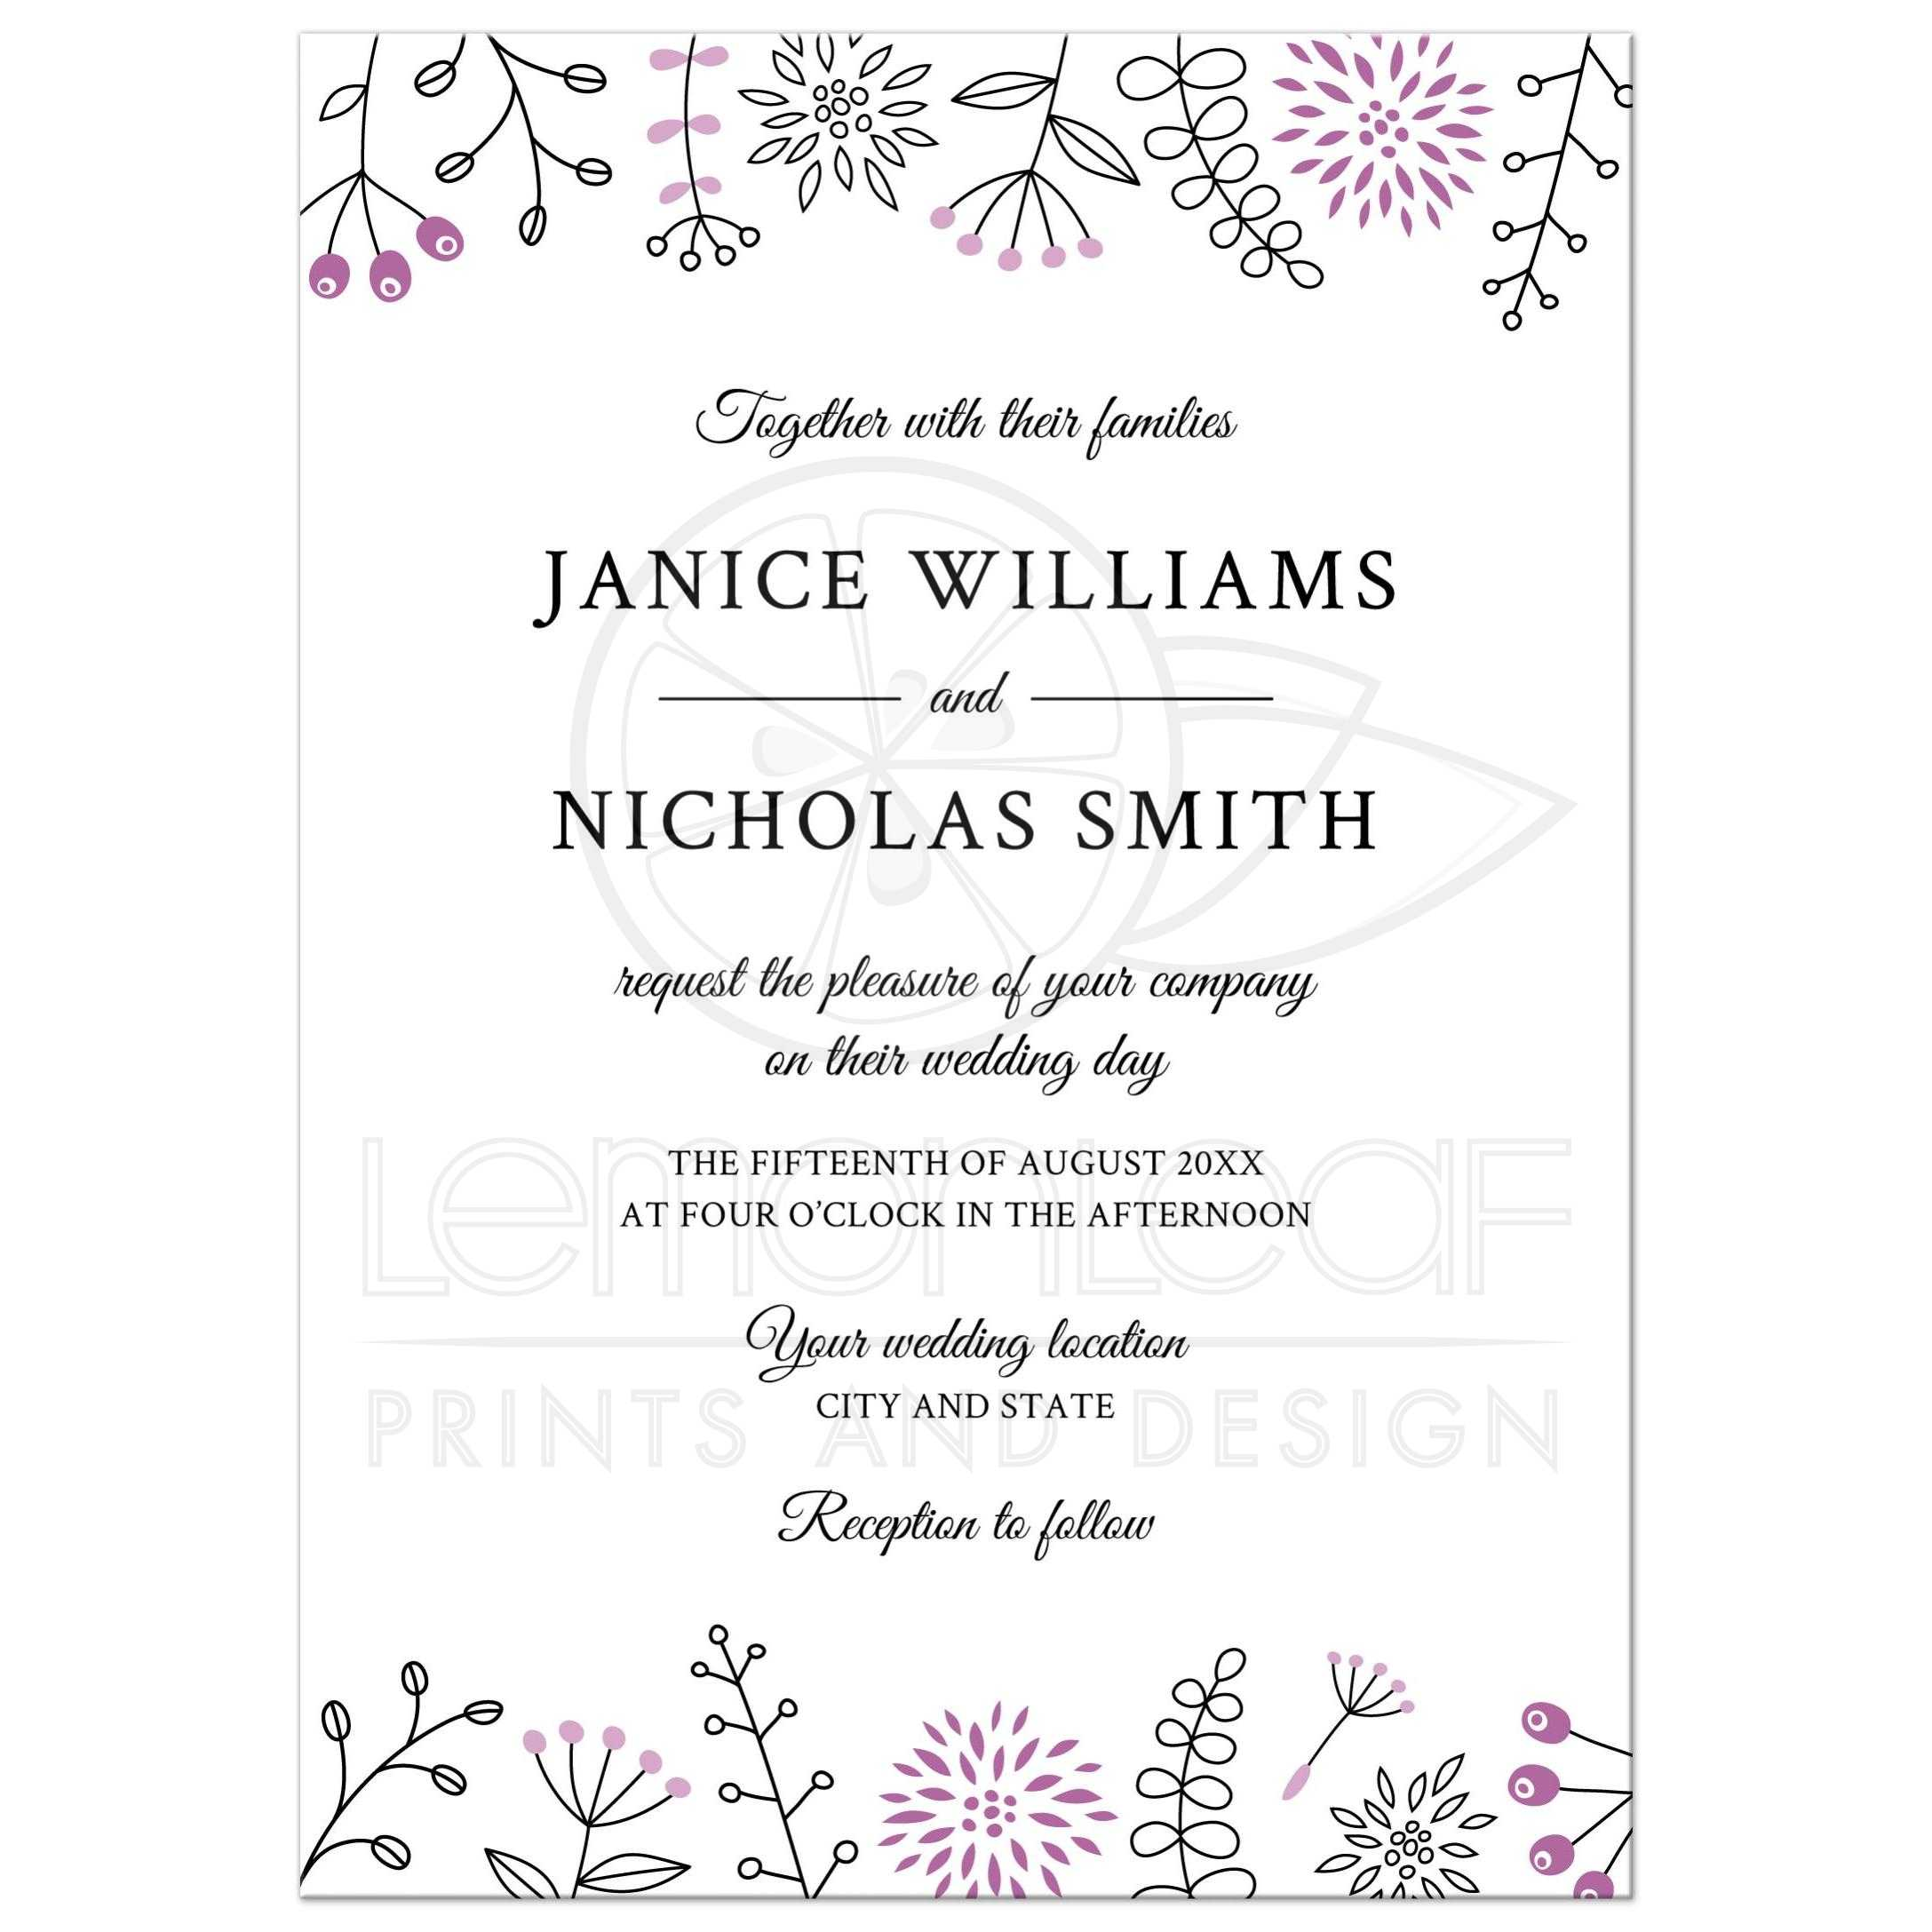 Elegant And Cute Spring And Summer Wedding Invitation Featuring Nature And  Flower Doodle Design Borders.